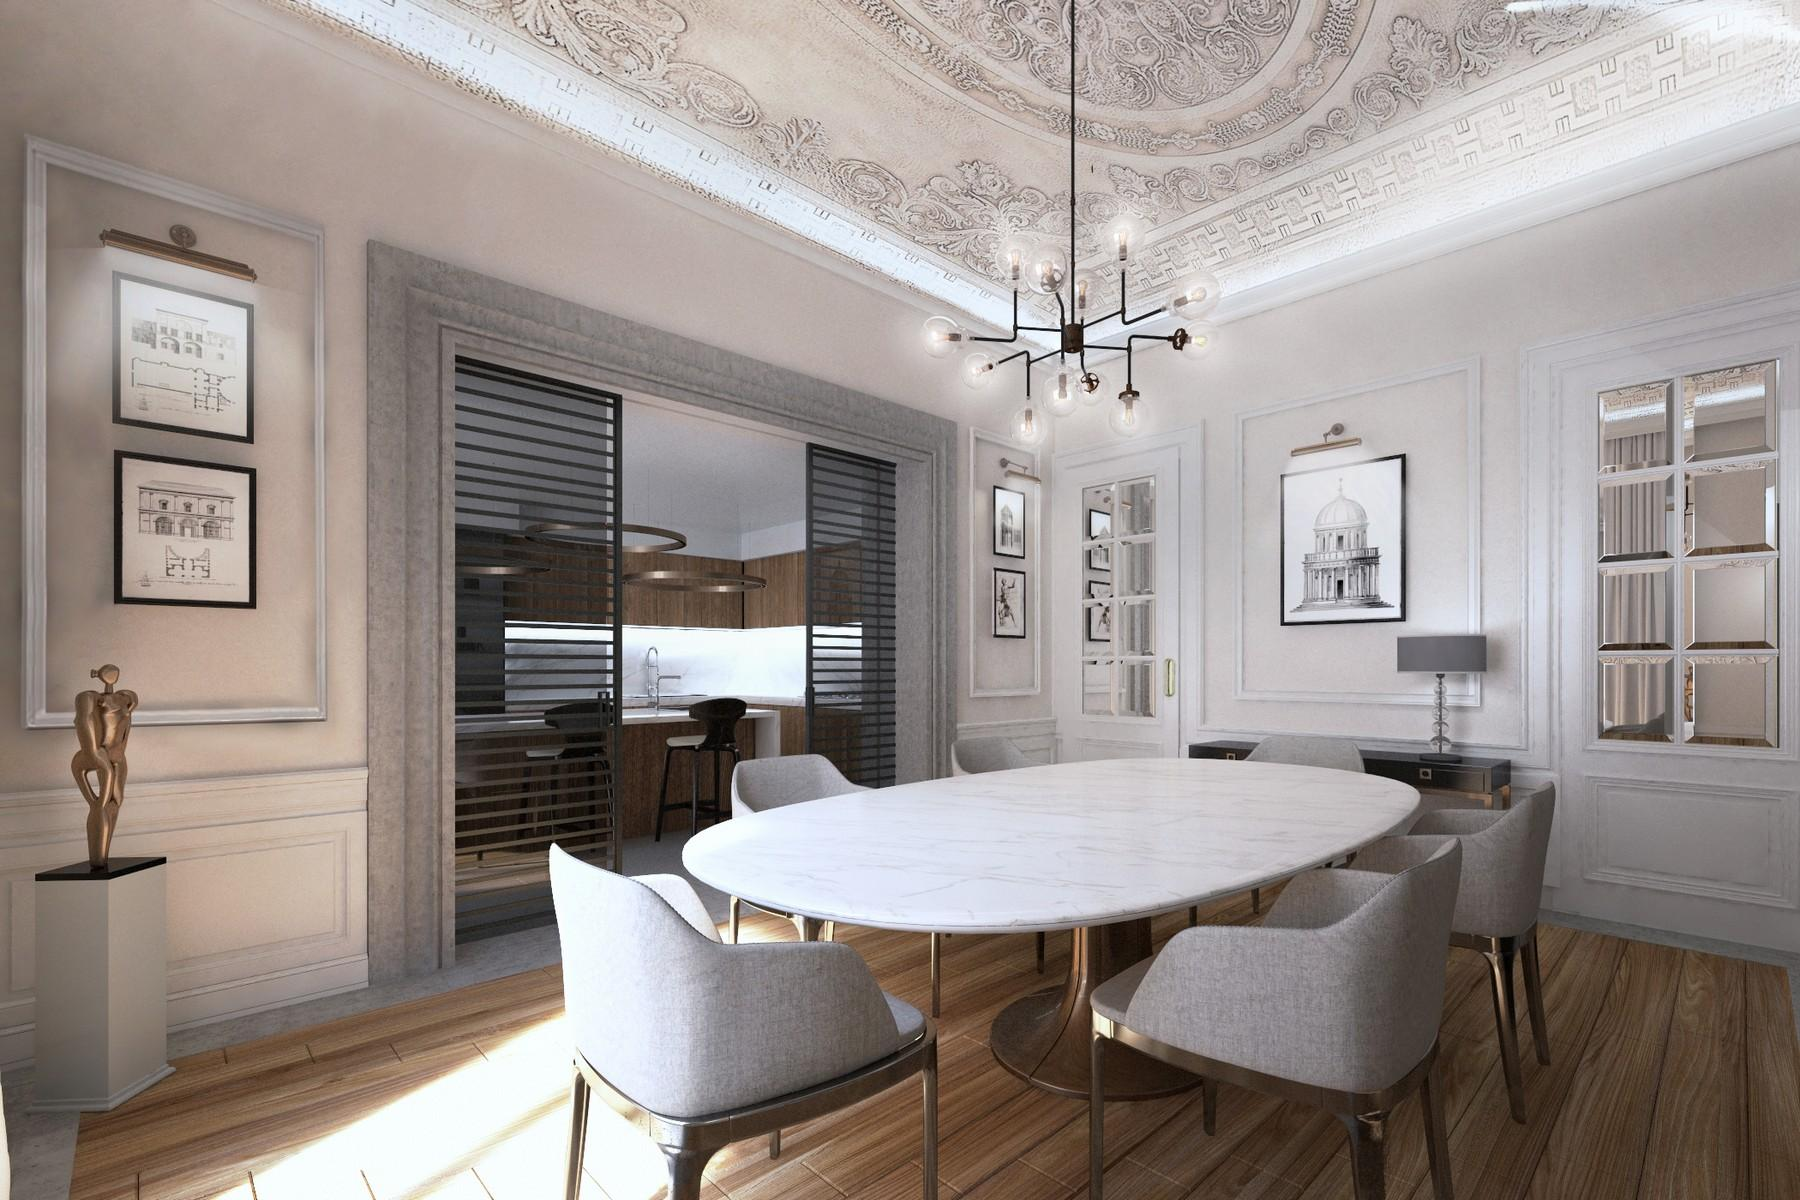 Ognissanti Palace: Extraordinary refined apartment in the city center - 3